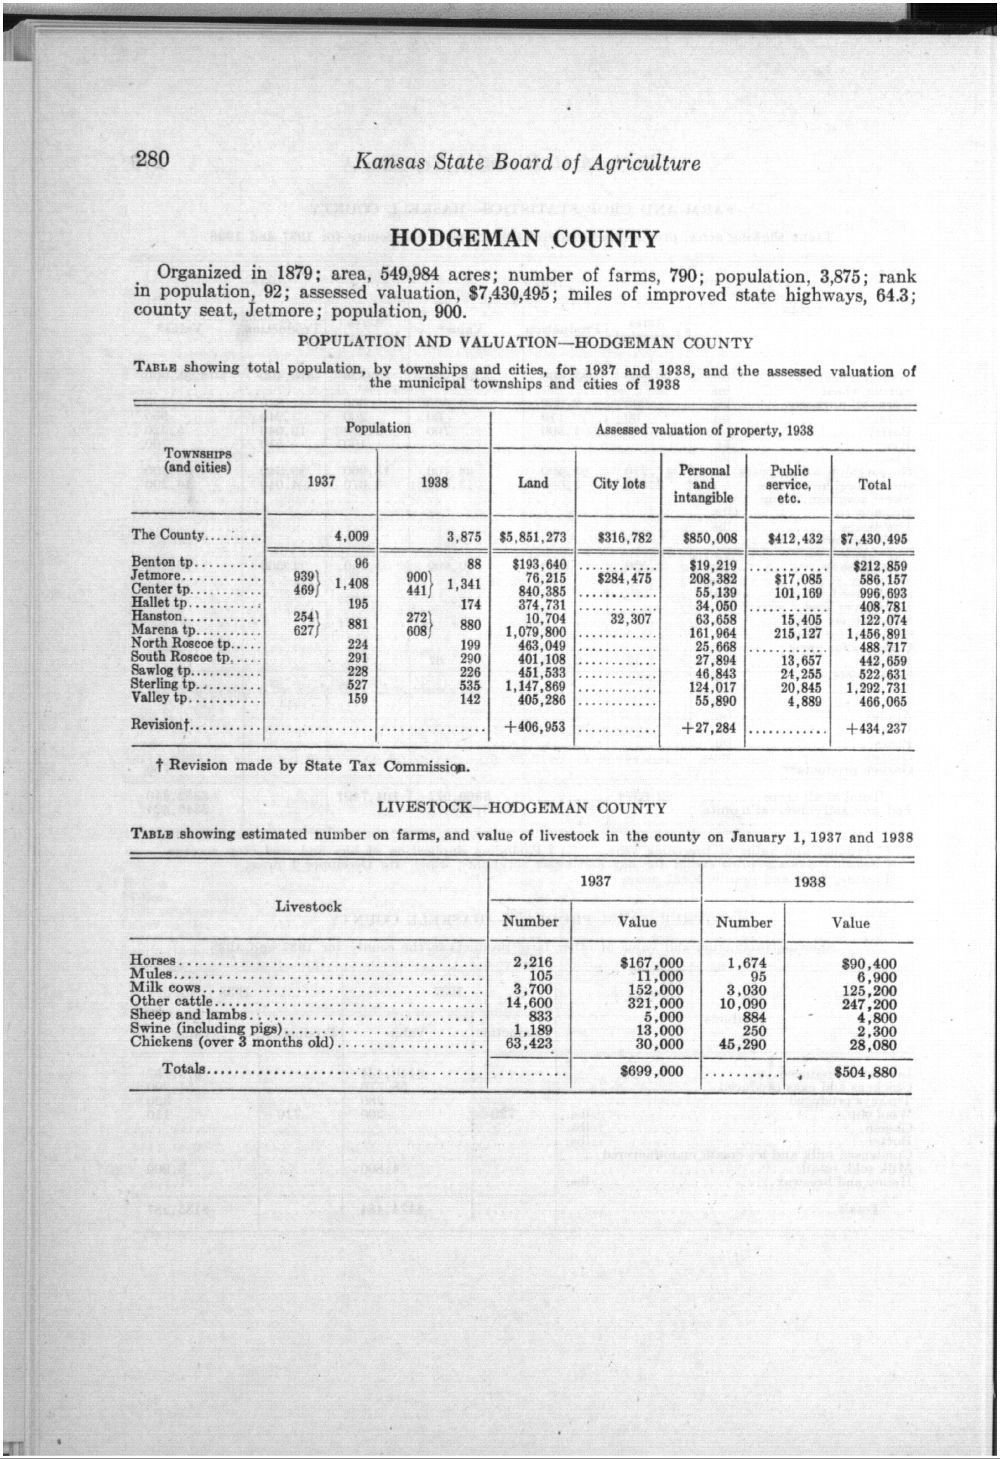 Thirty-first Biennial Report, Statistics by county showing population, acreage, production, and livestock, 1937-1938 - 280